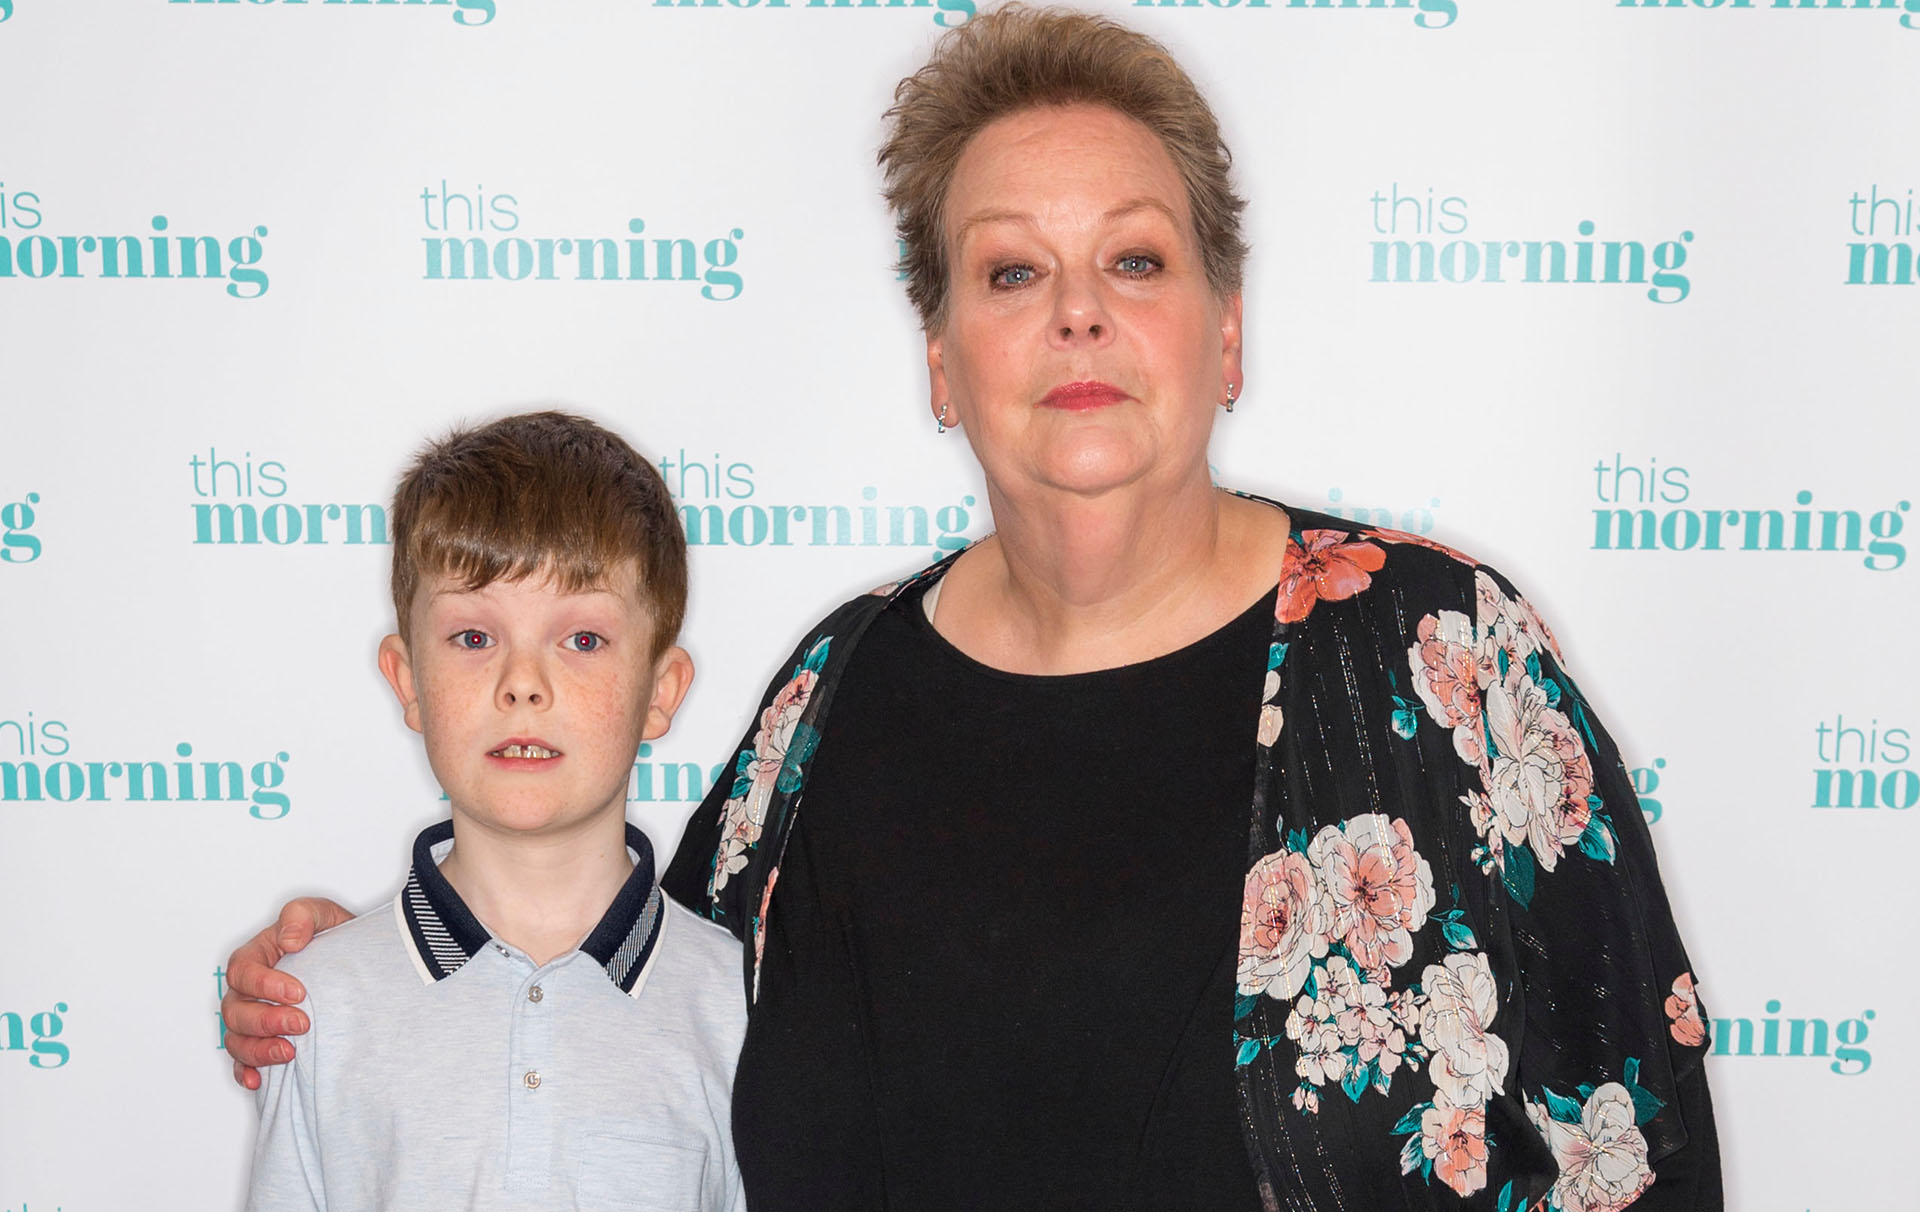 anne hegerty meets autistic boy who wrote letter